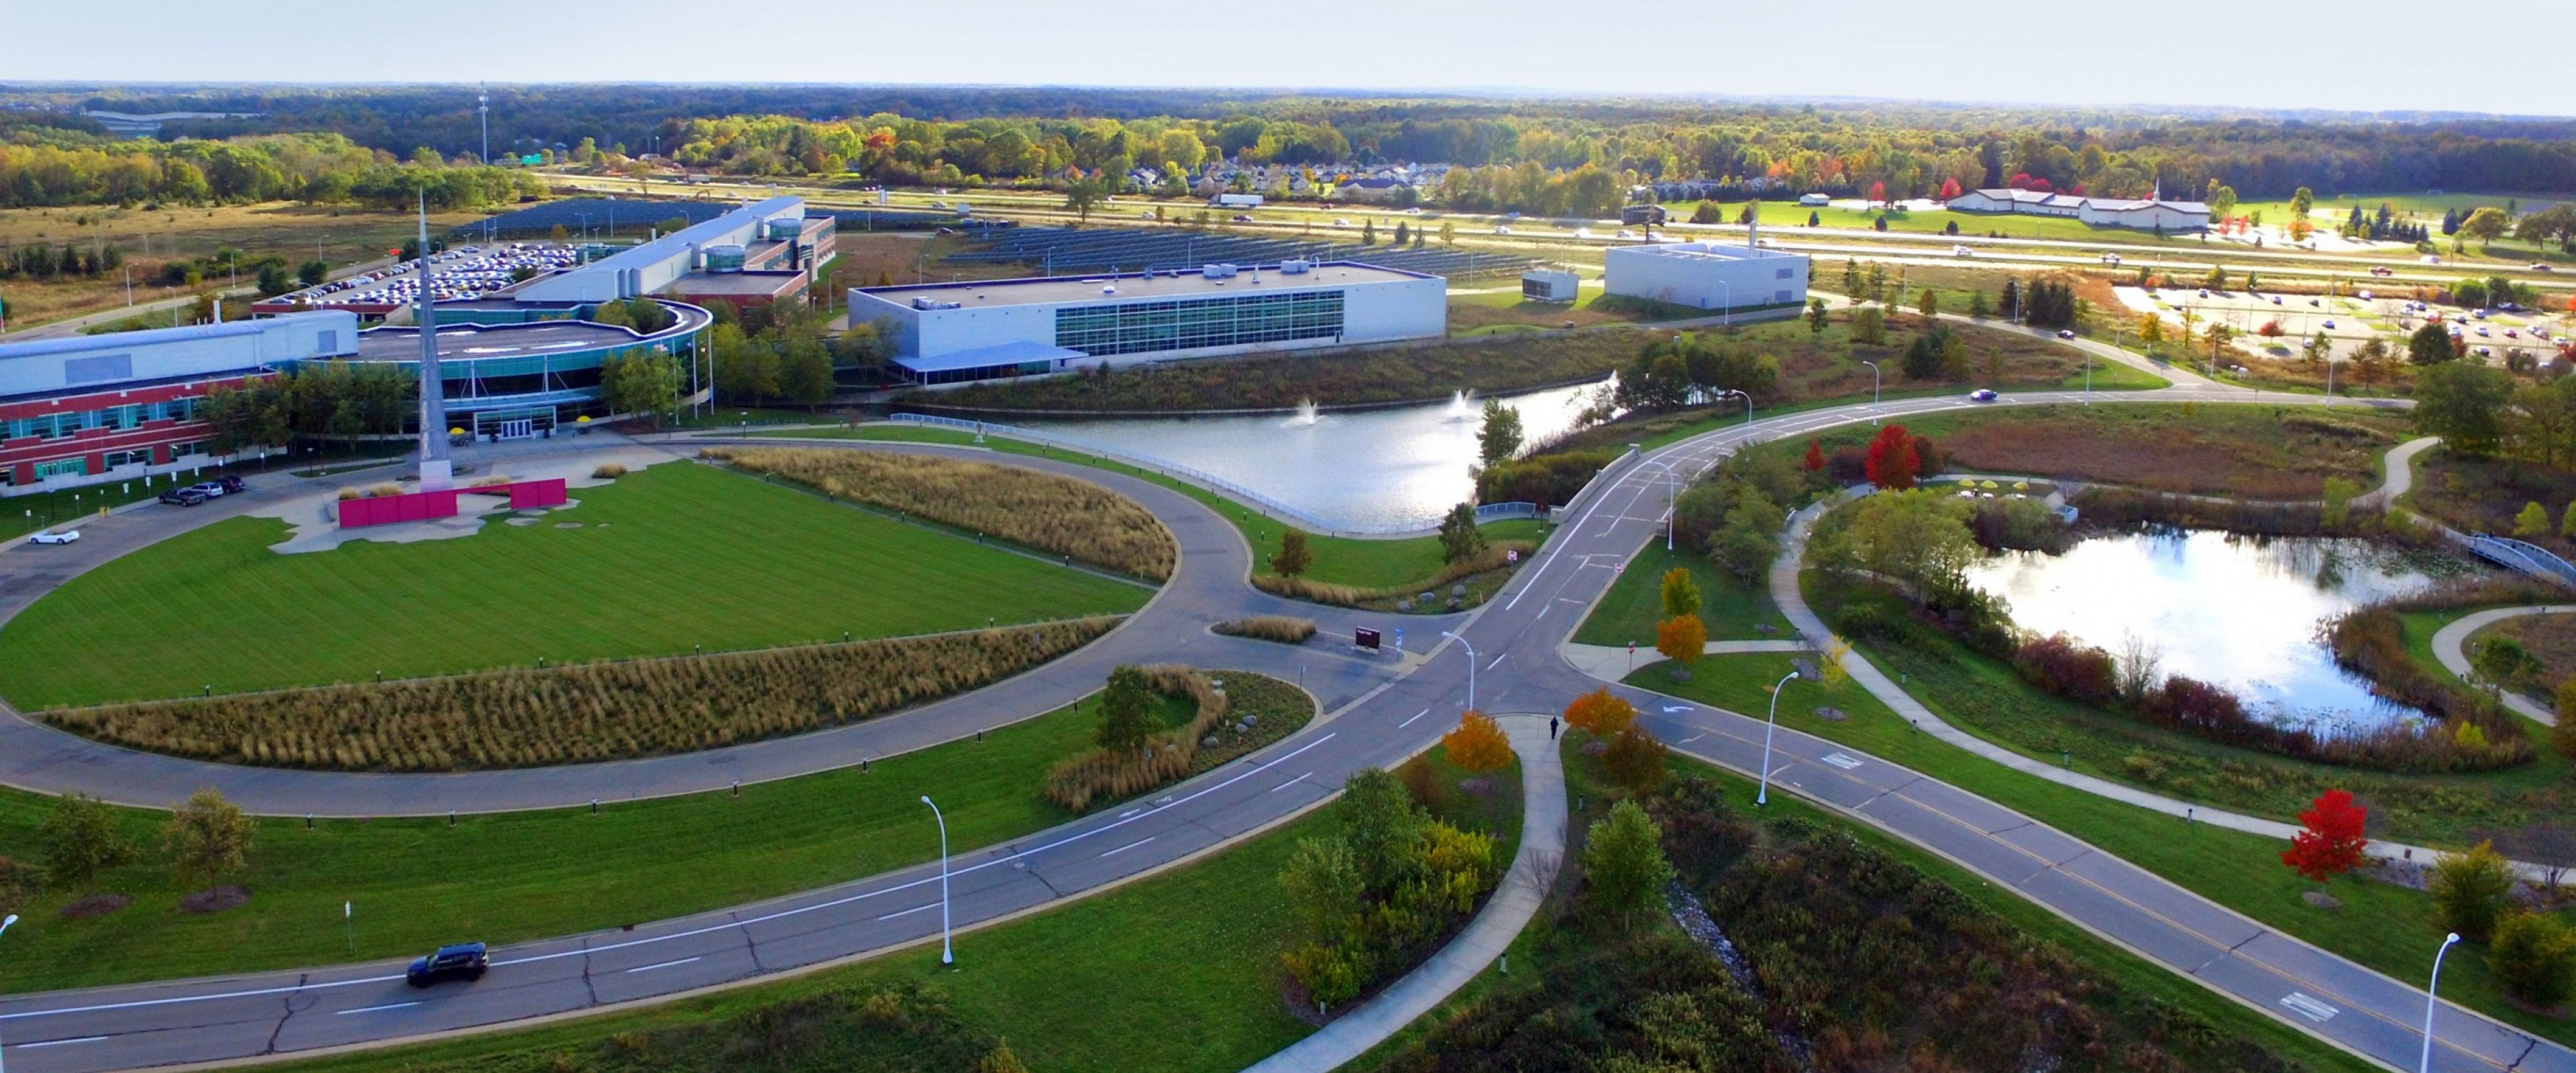 Aerial photo of WMU's Parkview Campus showing the winding roads and ponds that surround the College of Engineering and Applied Sciences